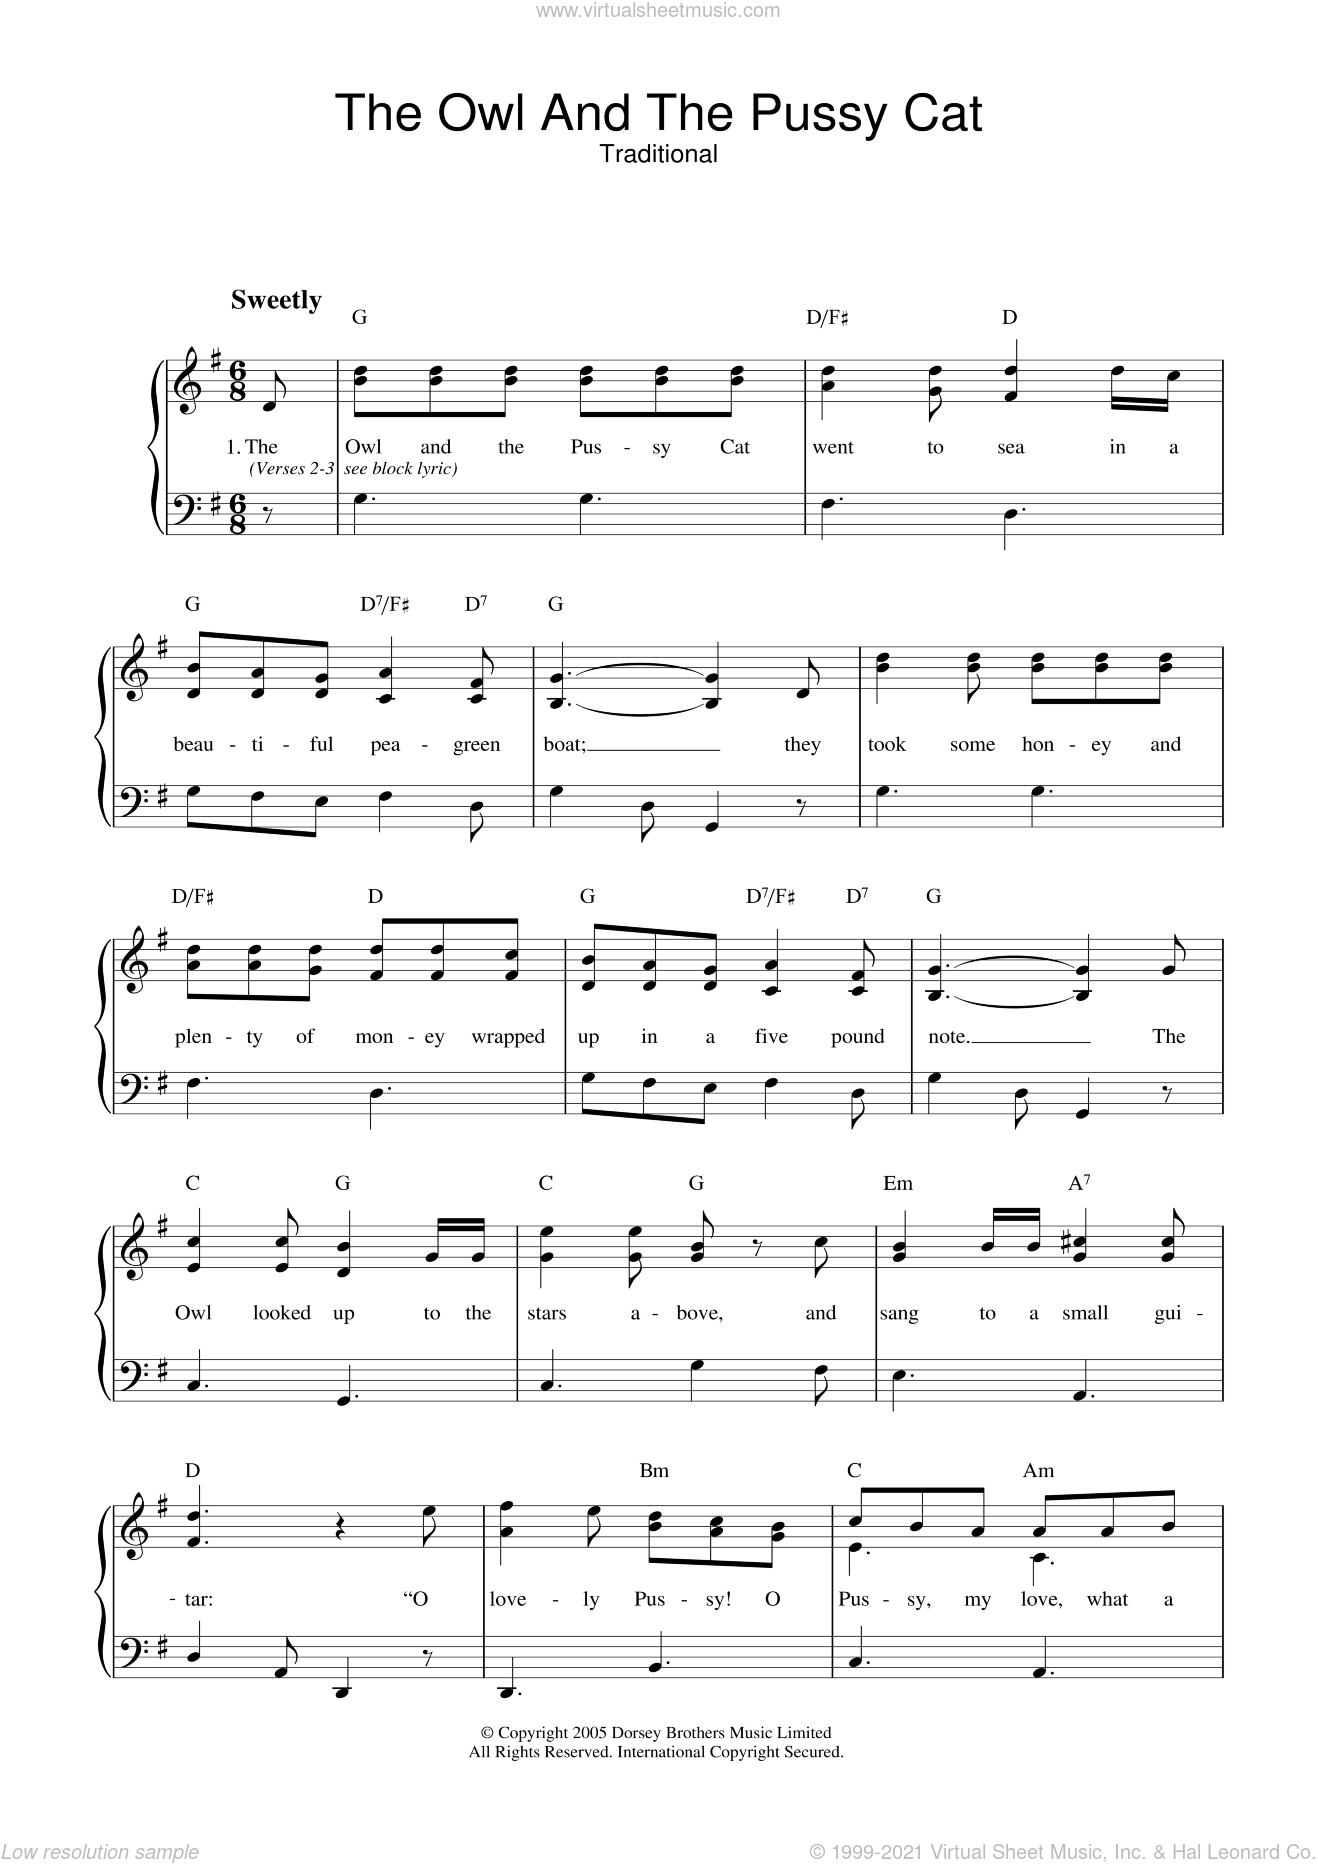 The Owl And The Pussy Cat sheet music for voice and piano, intermediate skill level